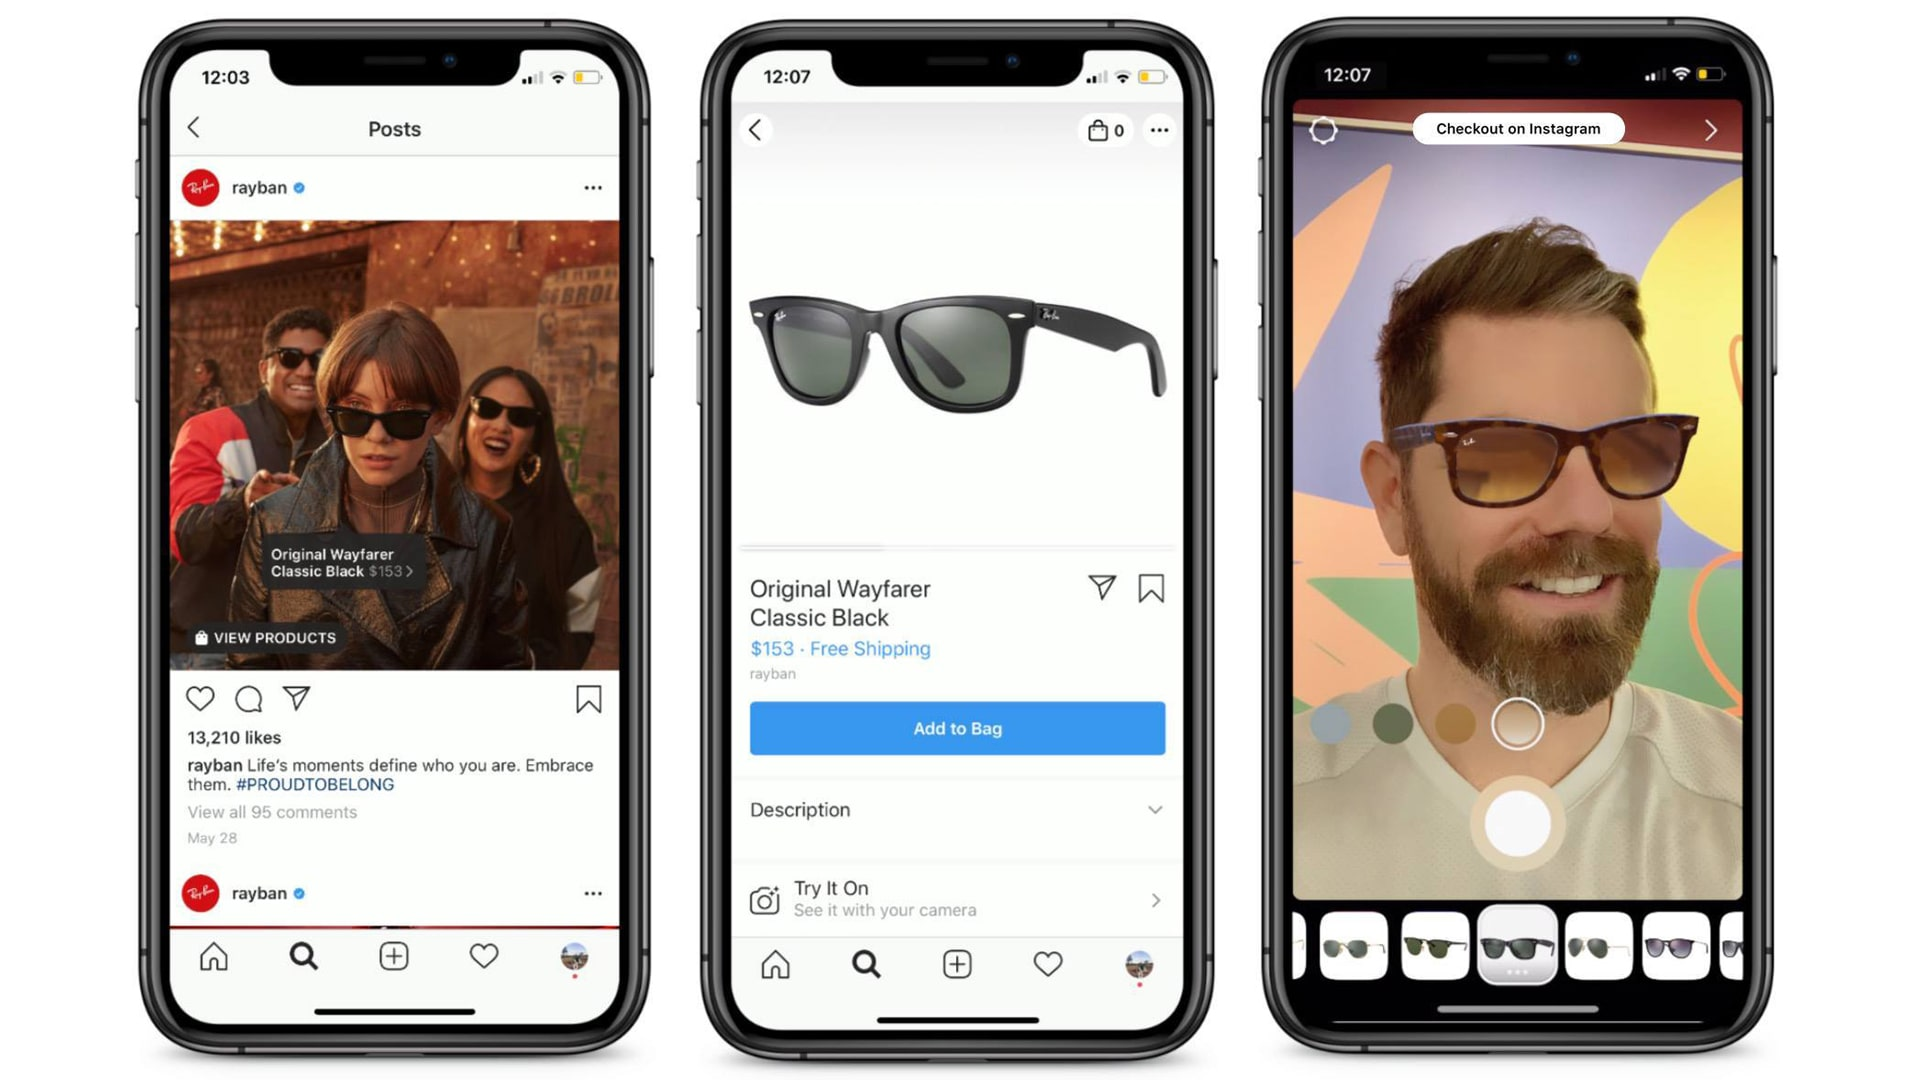 Augmented Reality in Instagram Checkout